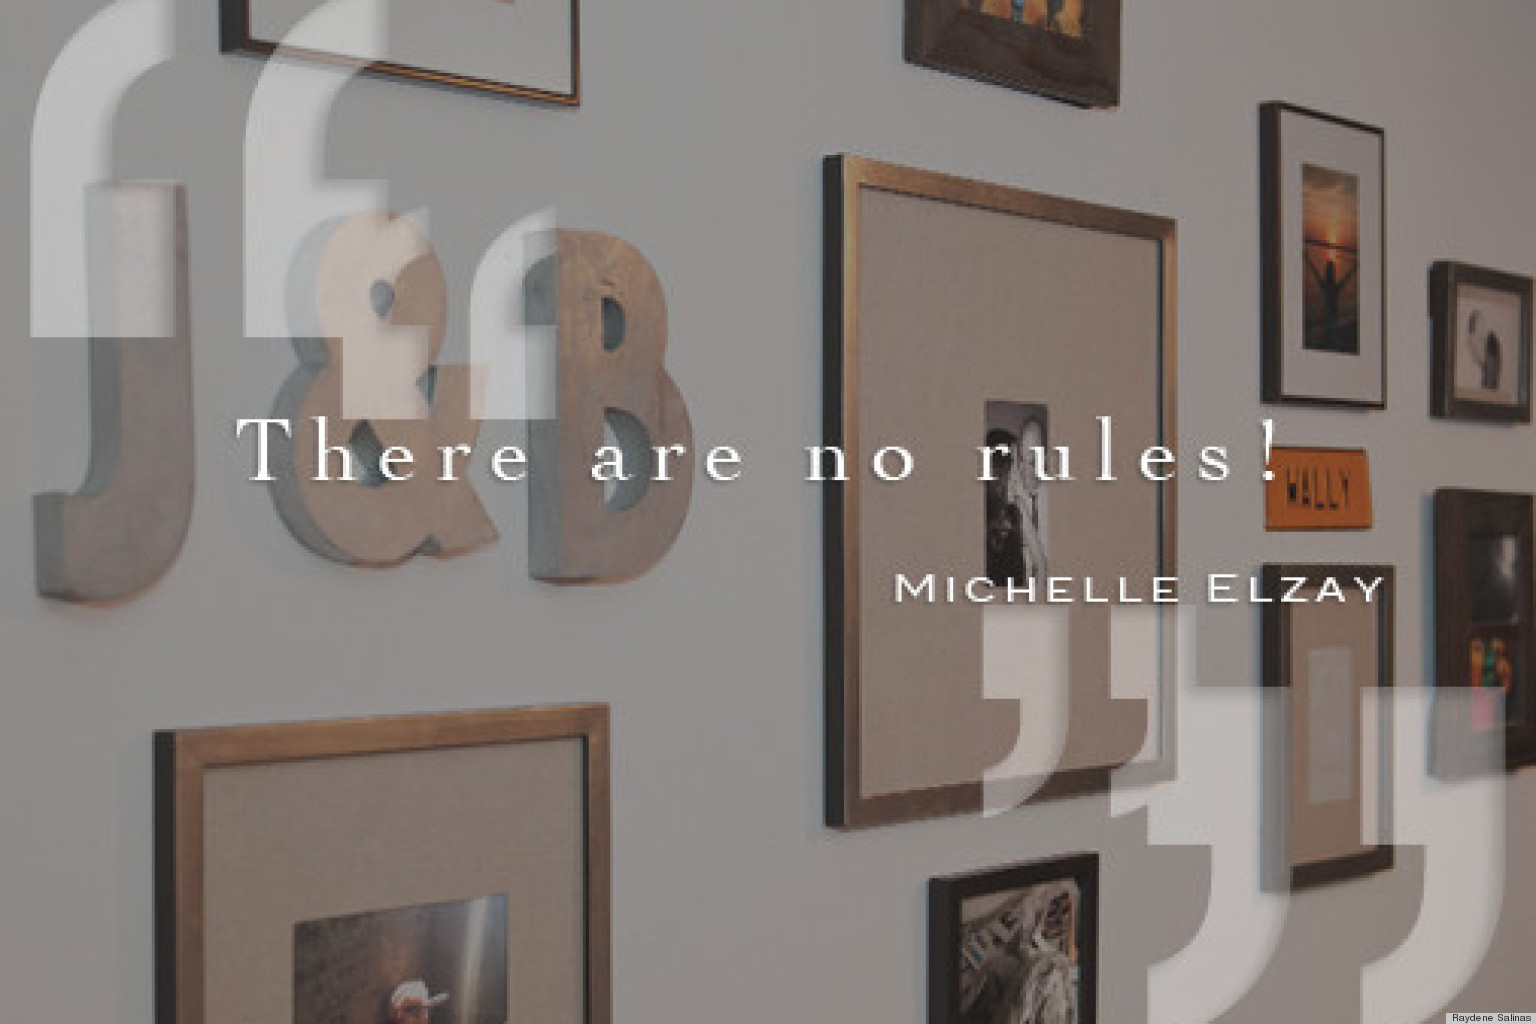 Captivating 7 Inspirational Quotes From Our Favorite Interior Designers (PHOTOS) |  HuffPost